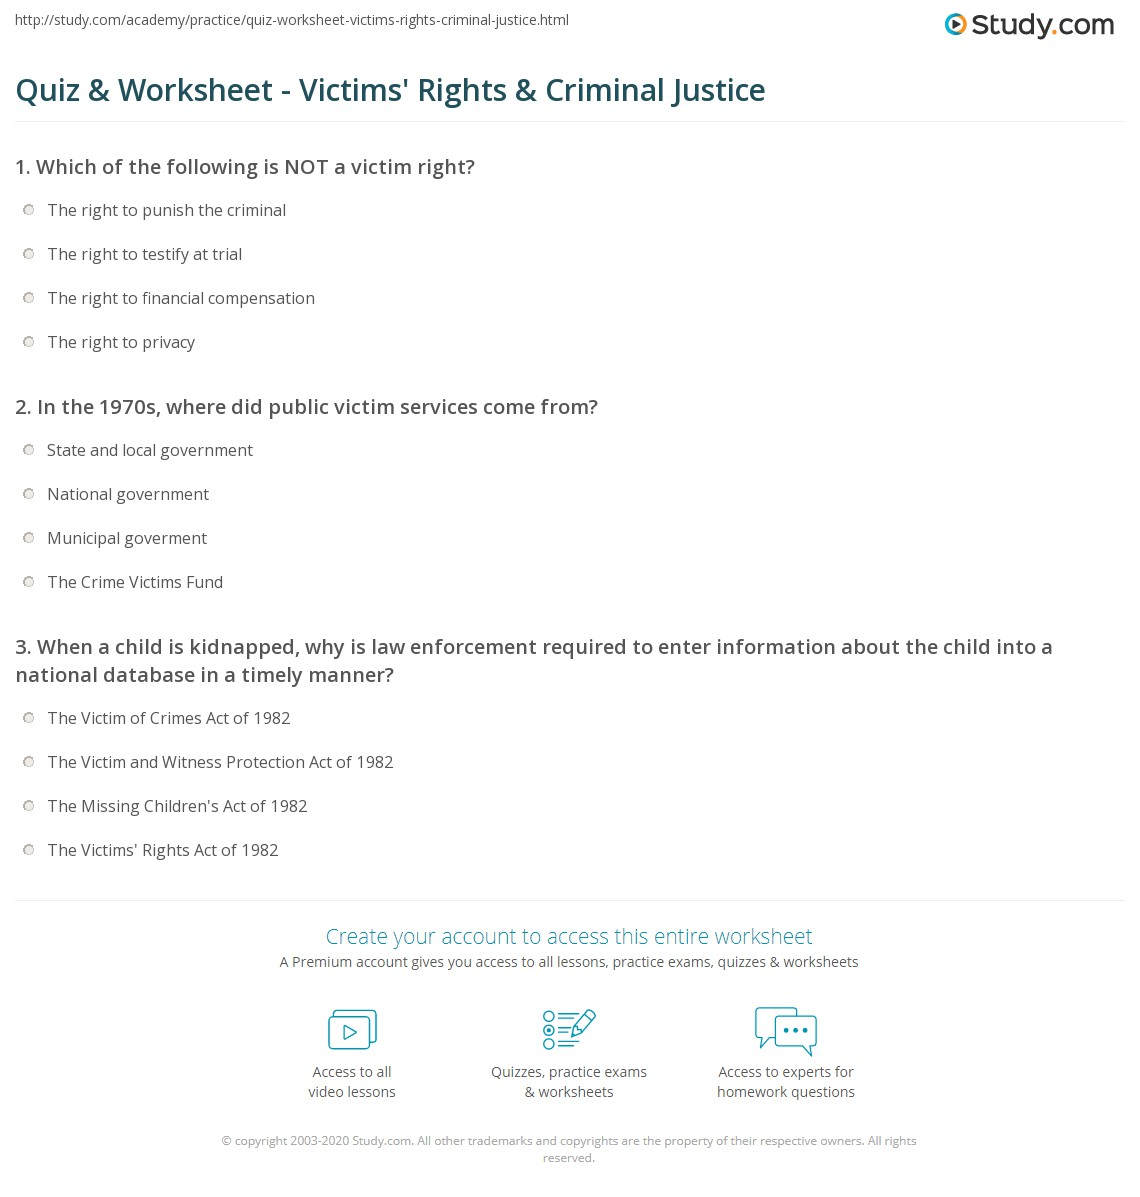 quiz worksheet victims 39 rights criminal justice. Black Bedroom Furniture Sets. Home Design Ideas